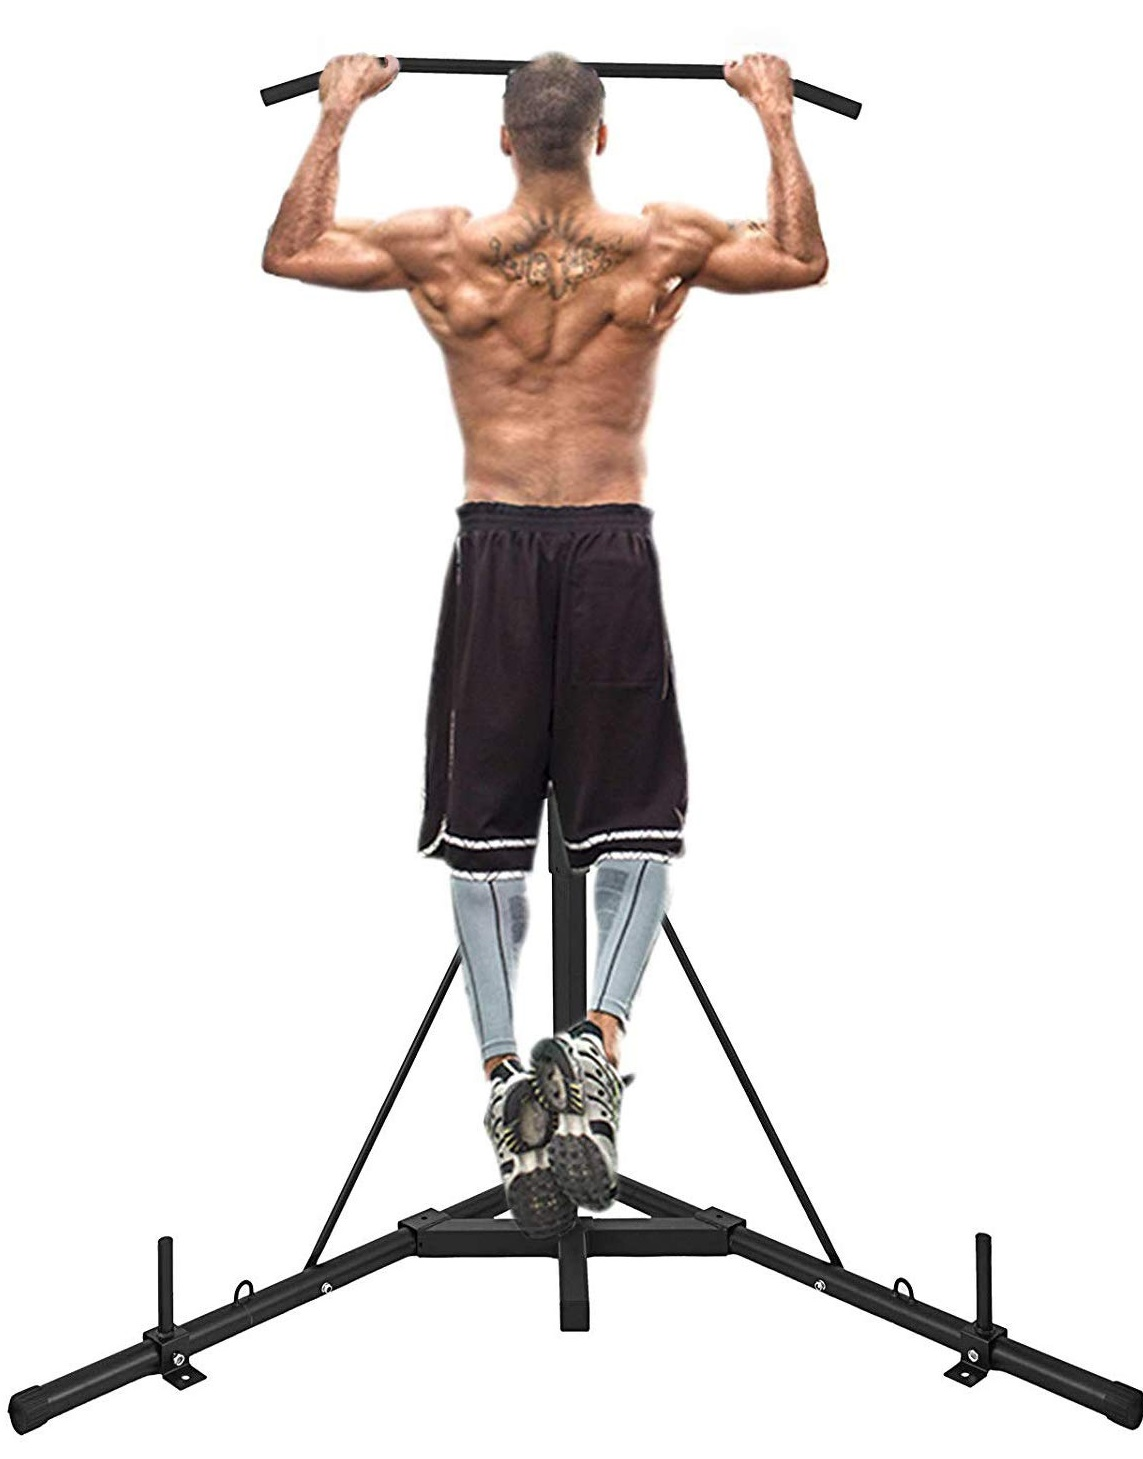 second cheapest - Happybuy Foldable Boxing Heavy Bag Stand - Best Punching Bag Stands with Pull Up Bar